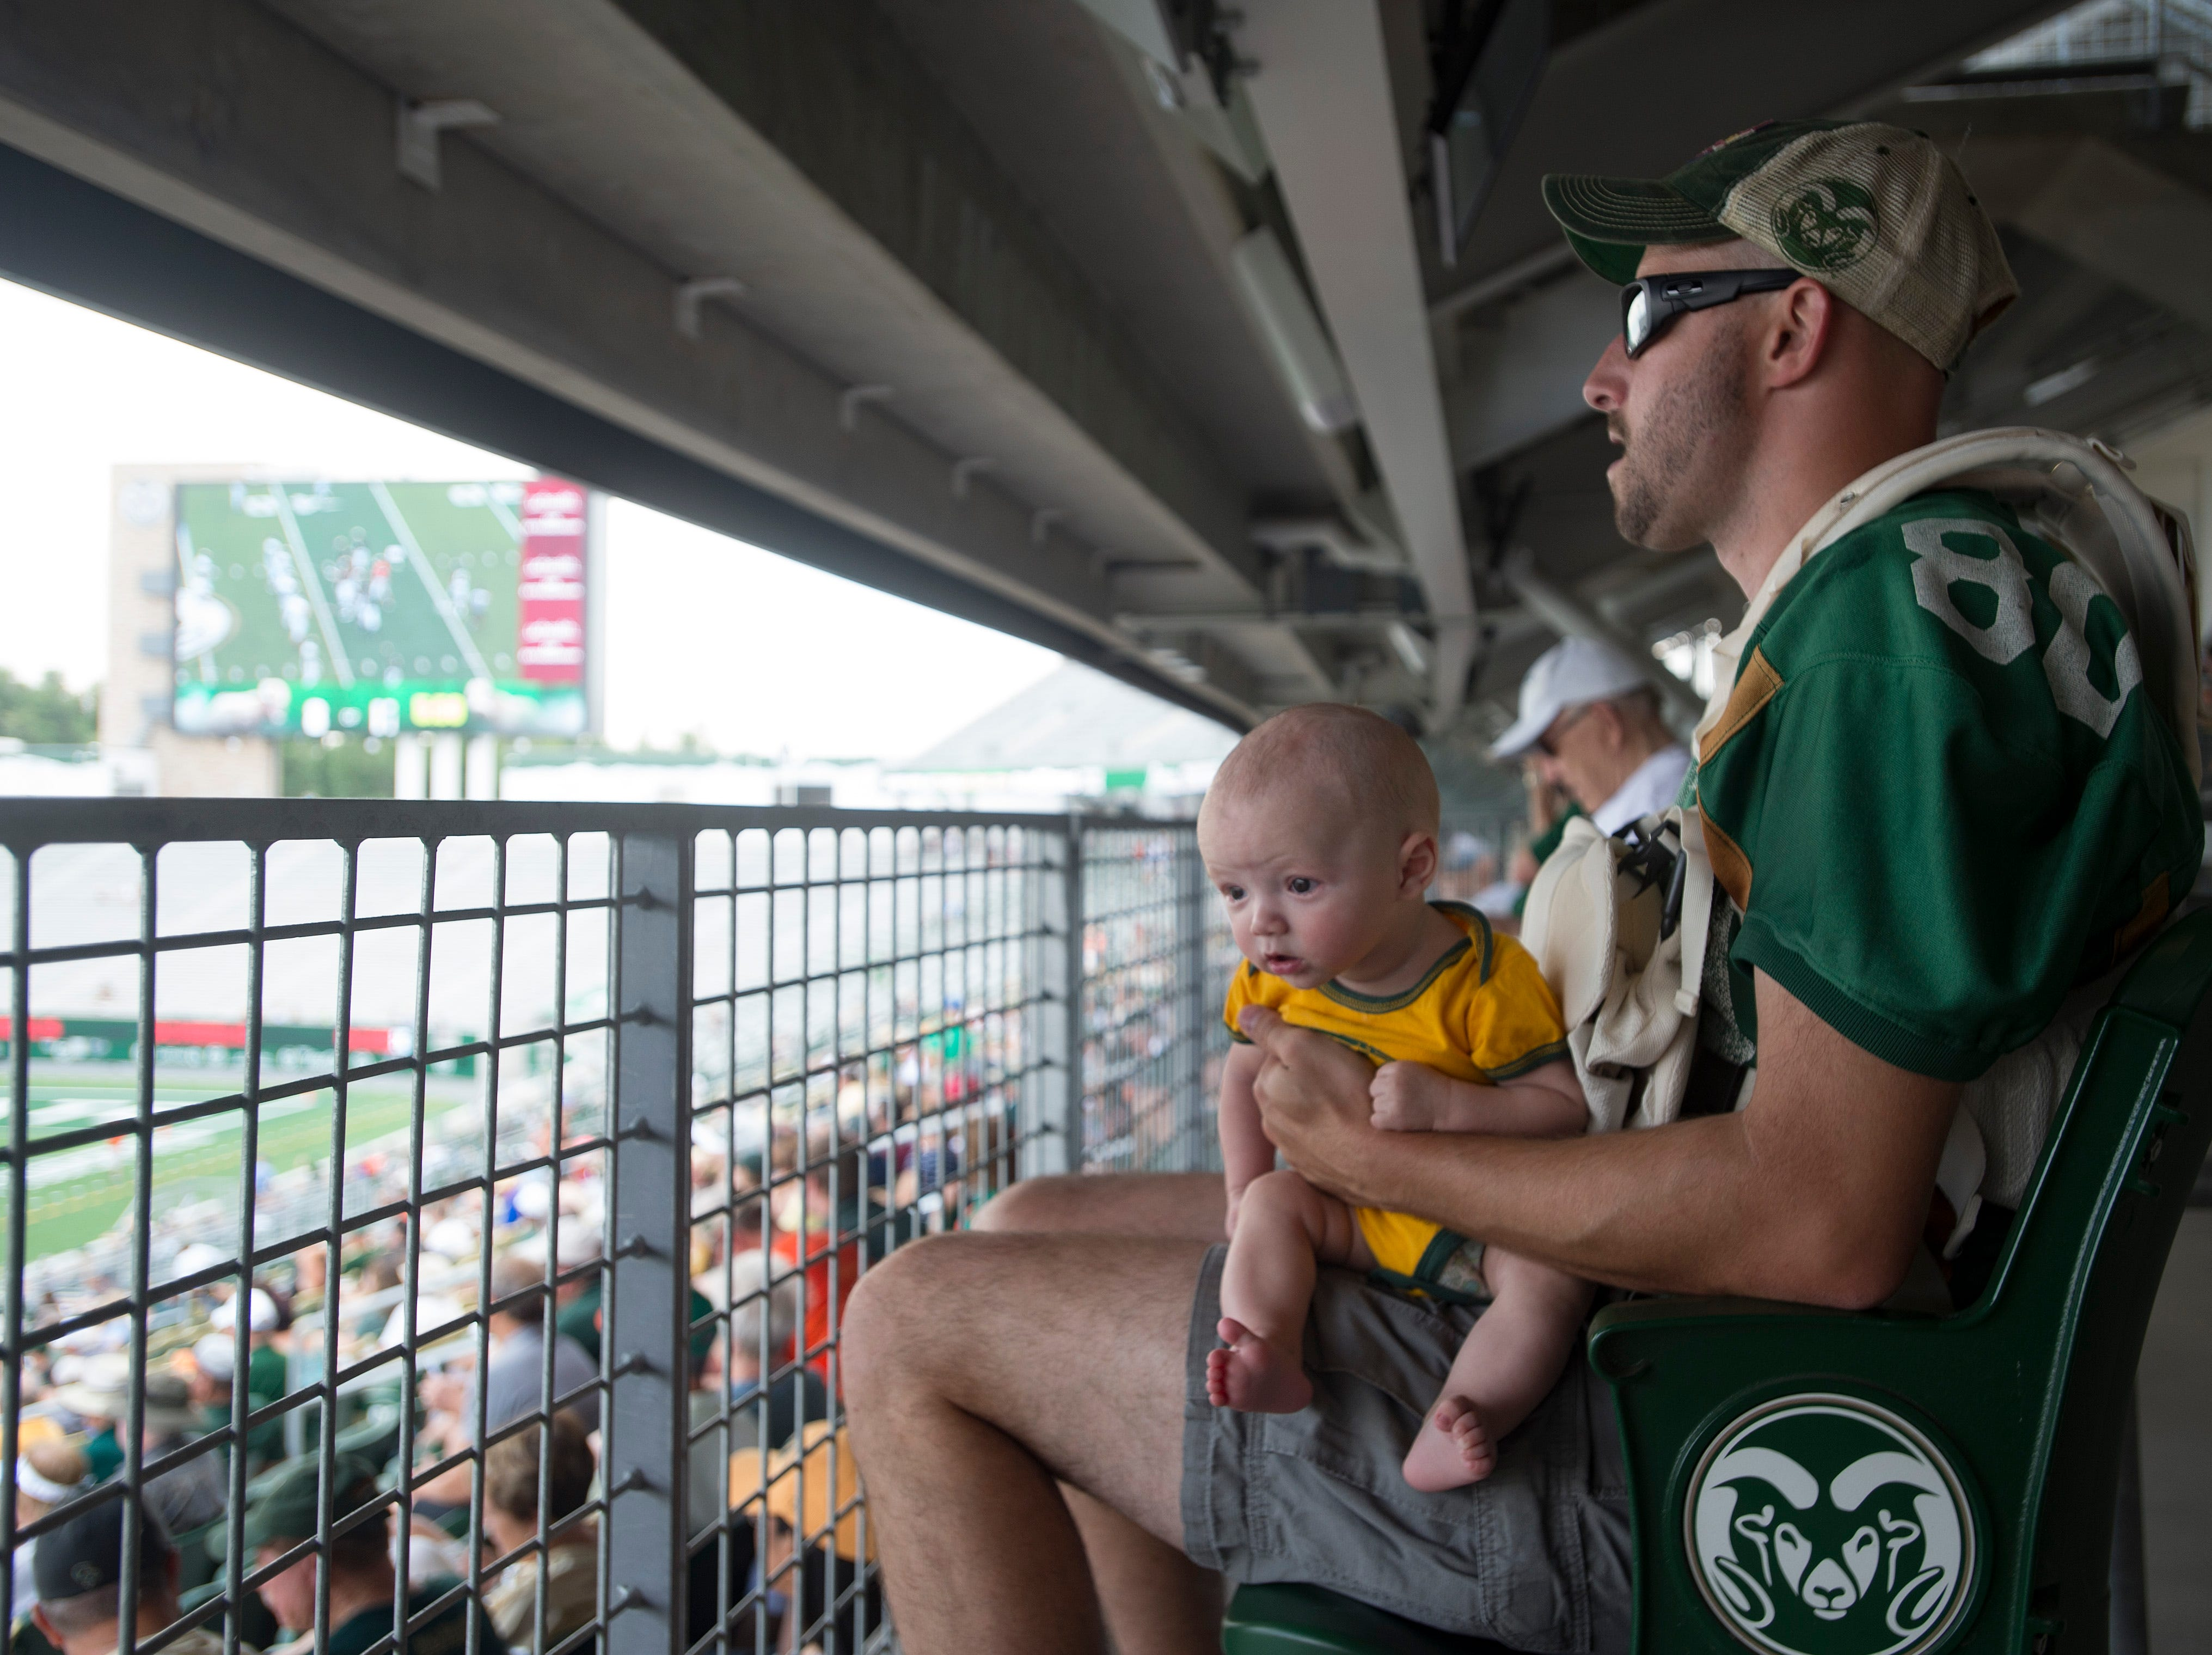 Tyler Shannon watches the Rams scrimmage with his 3-month-old son, Colin, during an open house hosted by the Rams at Canvas Stadium on Saturday, August 4, 2018.